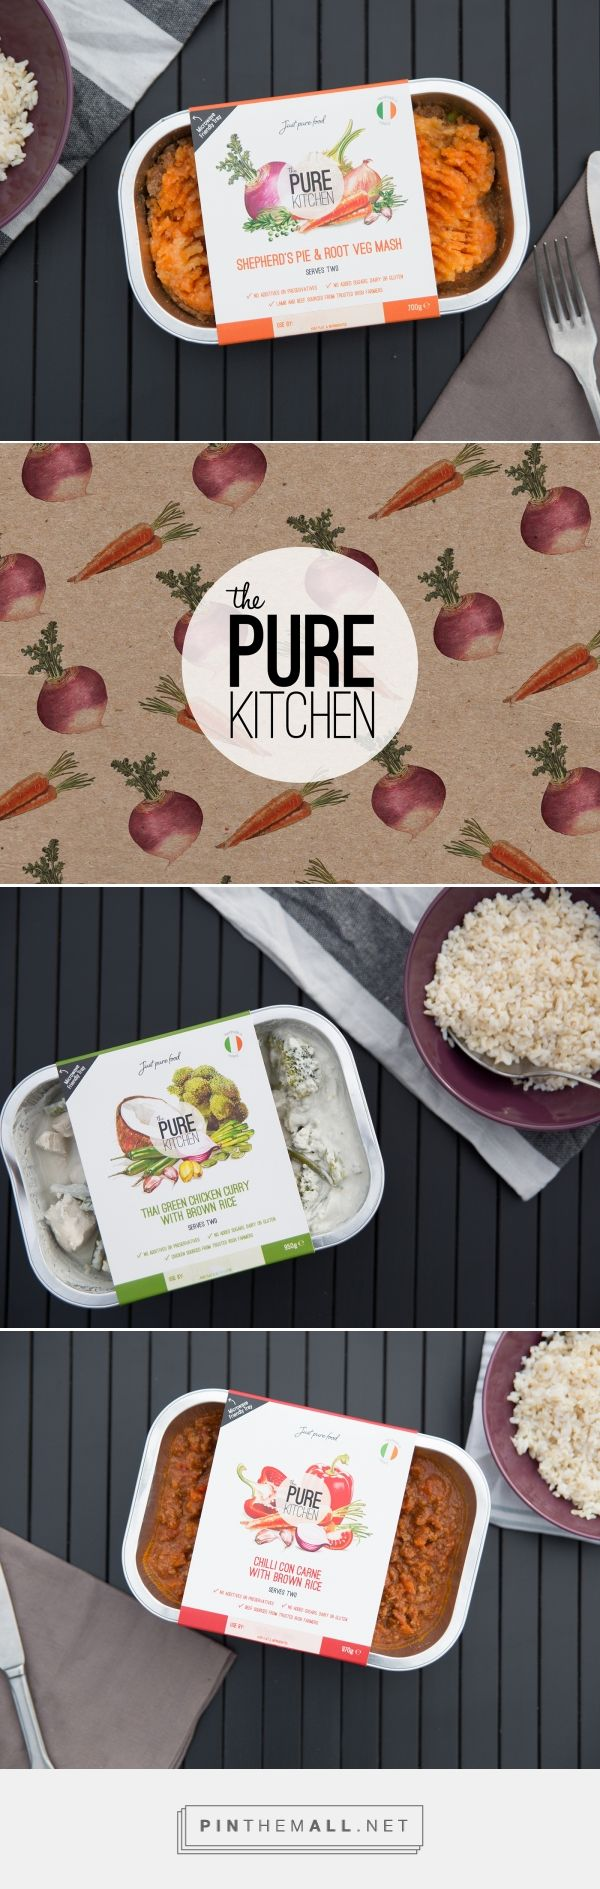 The Pure Kitchen healthy, tasty meals by Rowdy Studio. Source. Behance. Pin curated by #SFields99 #packaging #design #inspiration #ideas #branding #product #ready #meals #rowdystudio